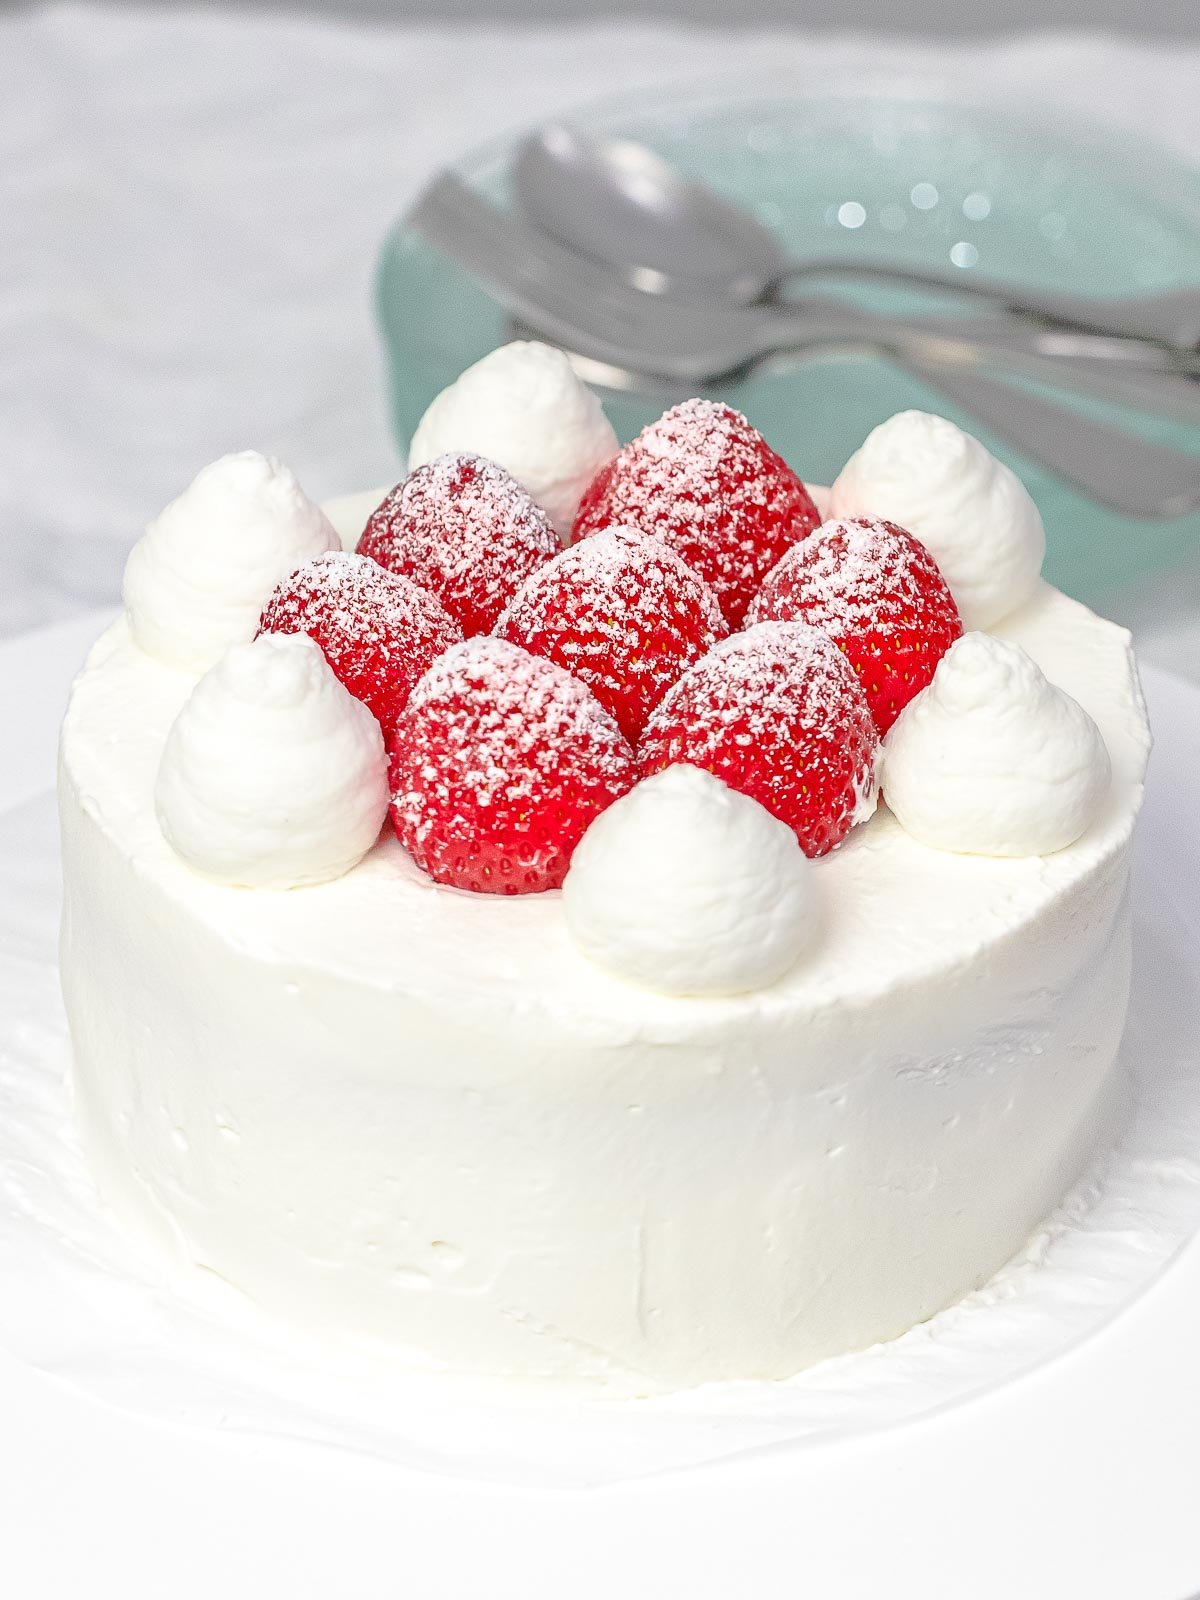 Fresh strawberry cream cake decorated with whole strawberries, powdered sugar, and whipped cream next to plates and utensils